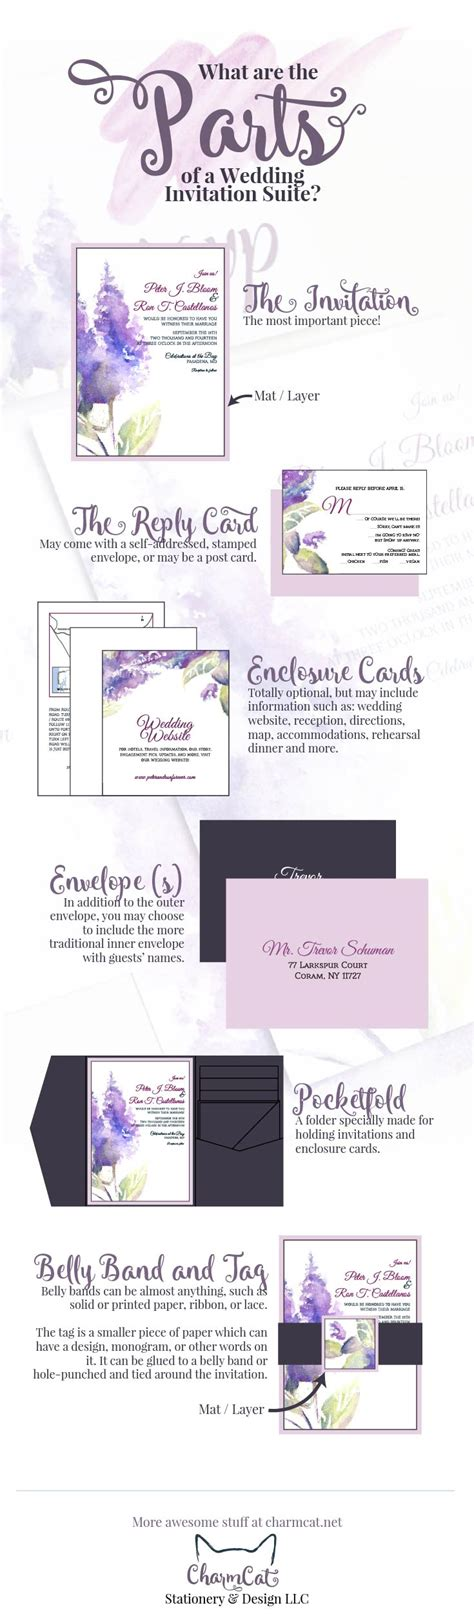 Parts Of Wedding Invitation what are the parts of a wedding invitation suite charmcat